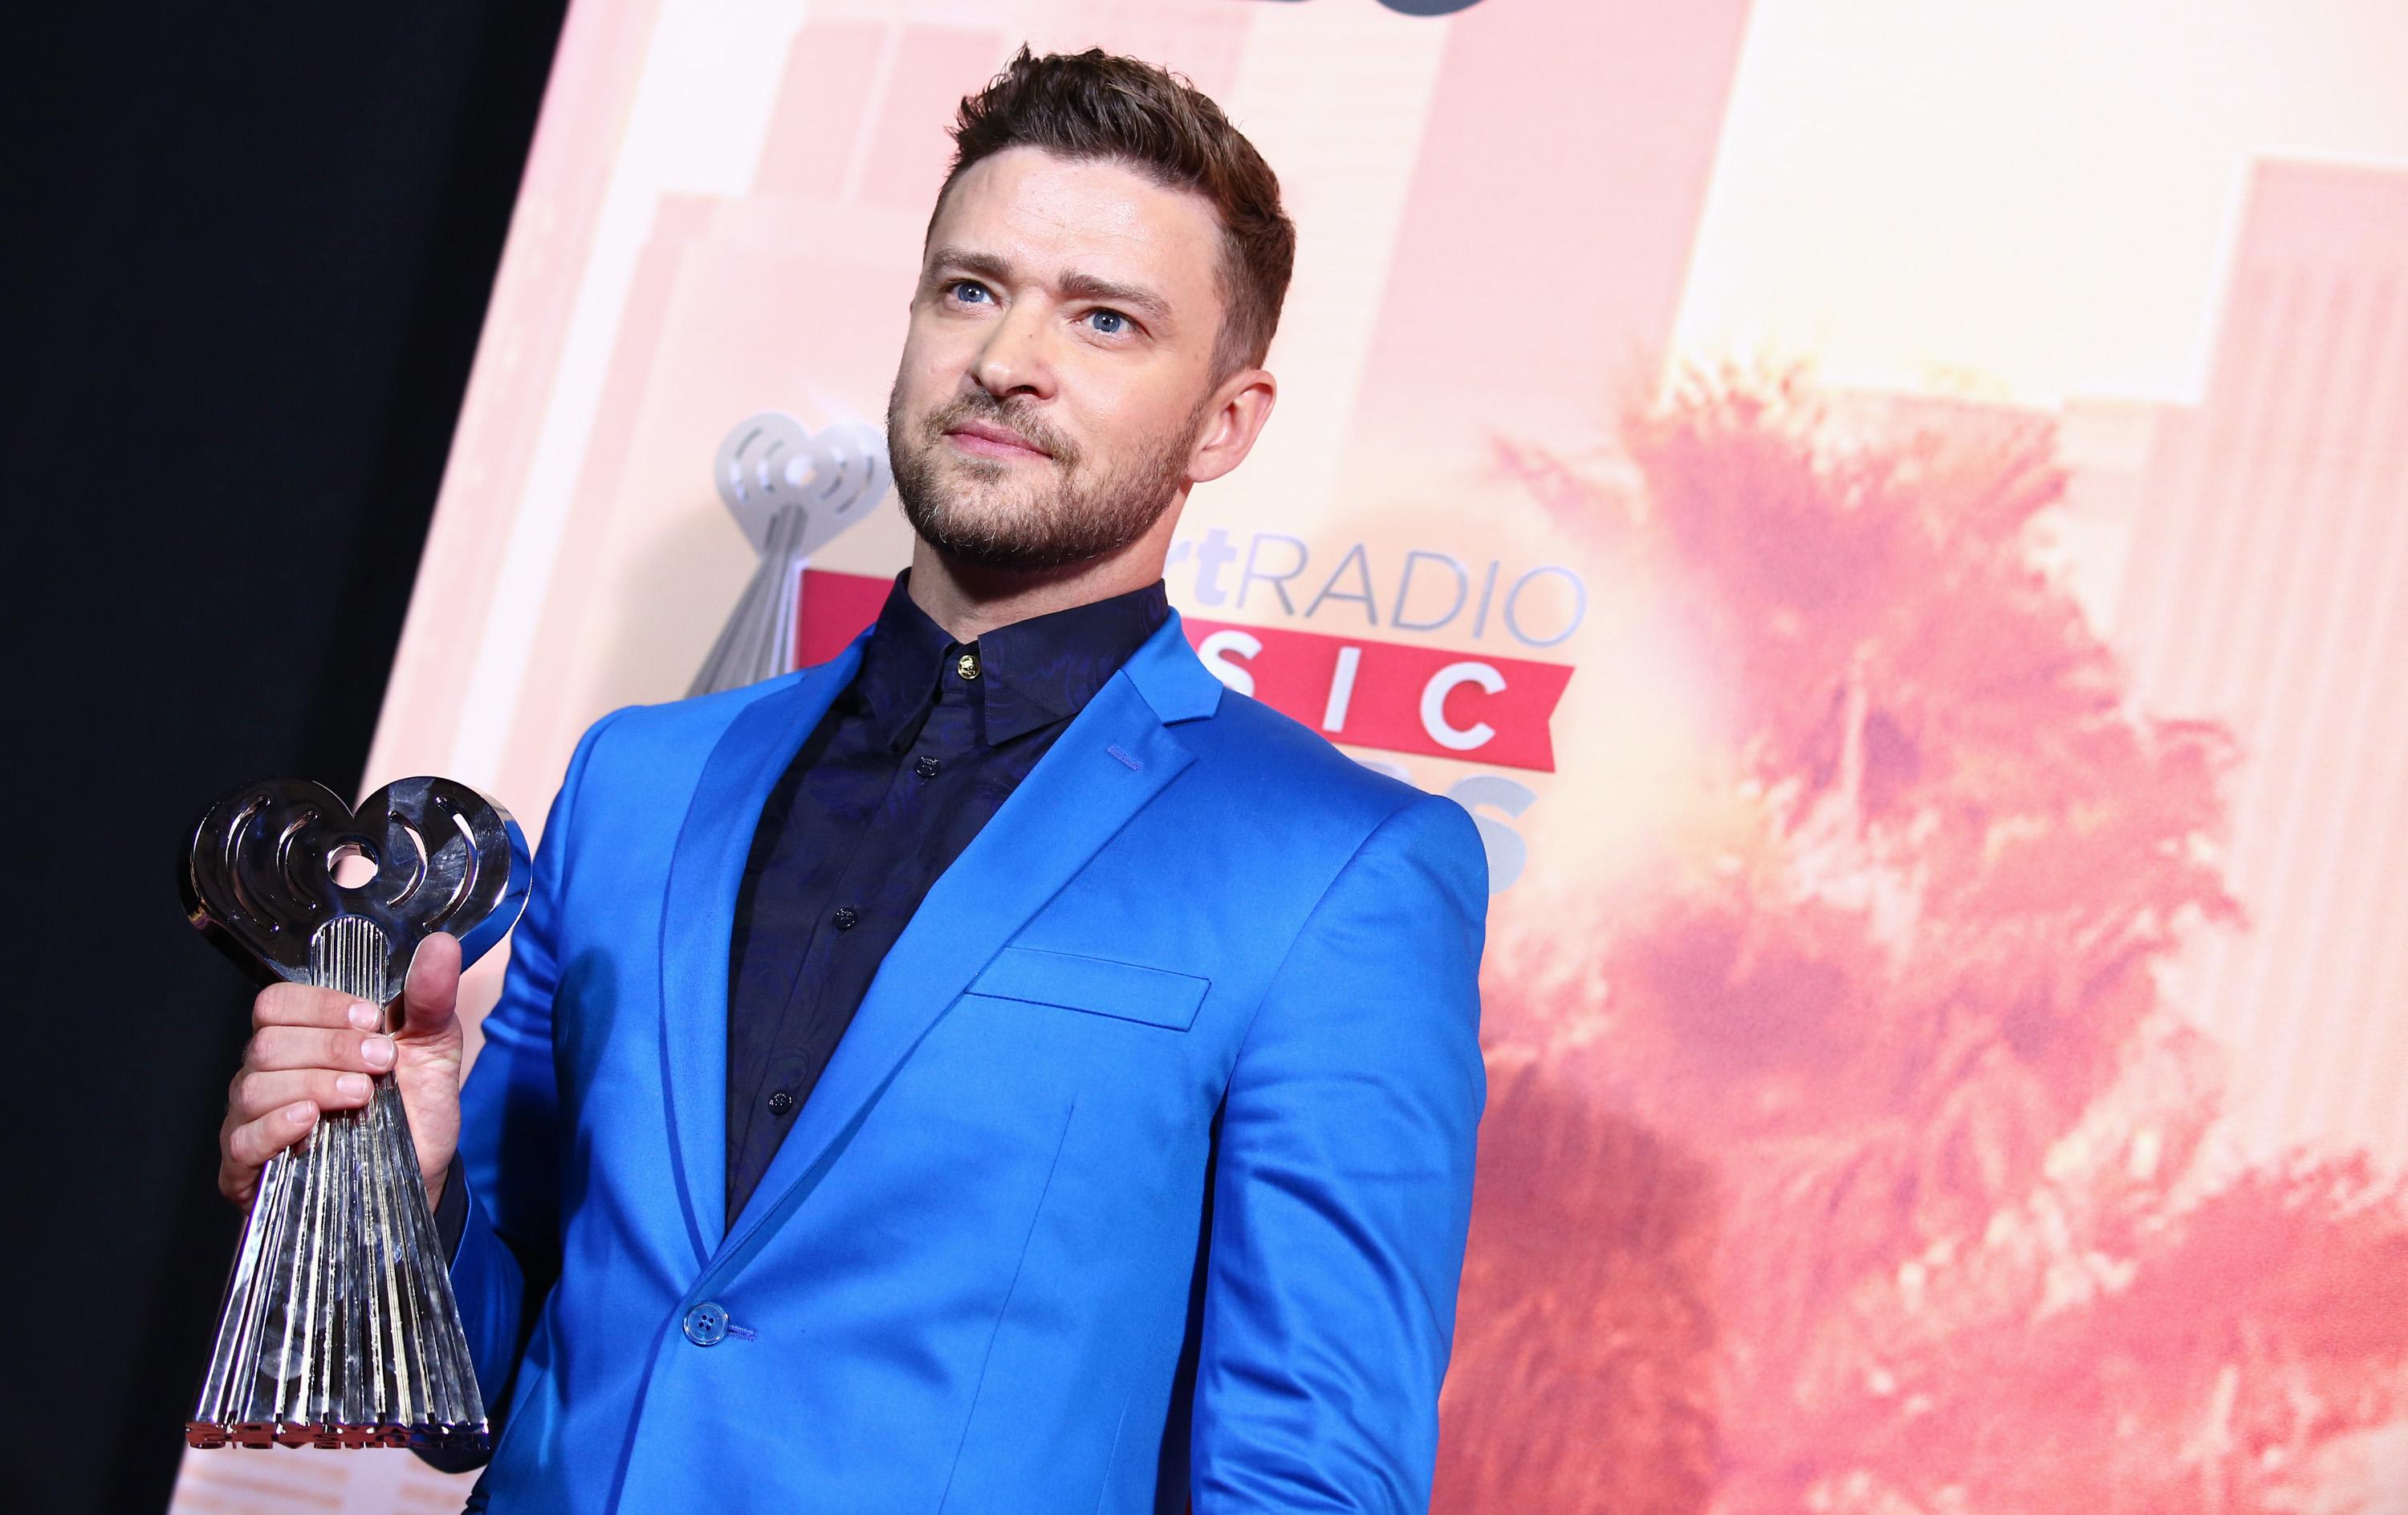 Timberlake offers positive words at iHeartRadio Music Awards